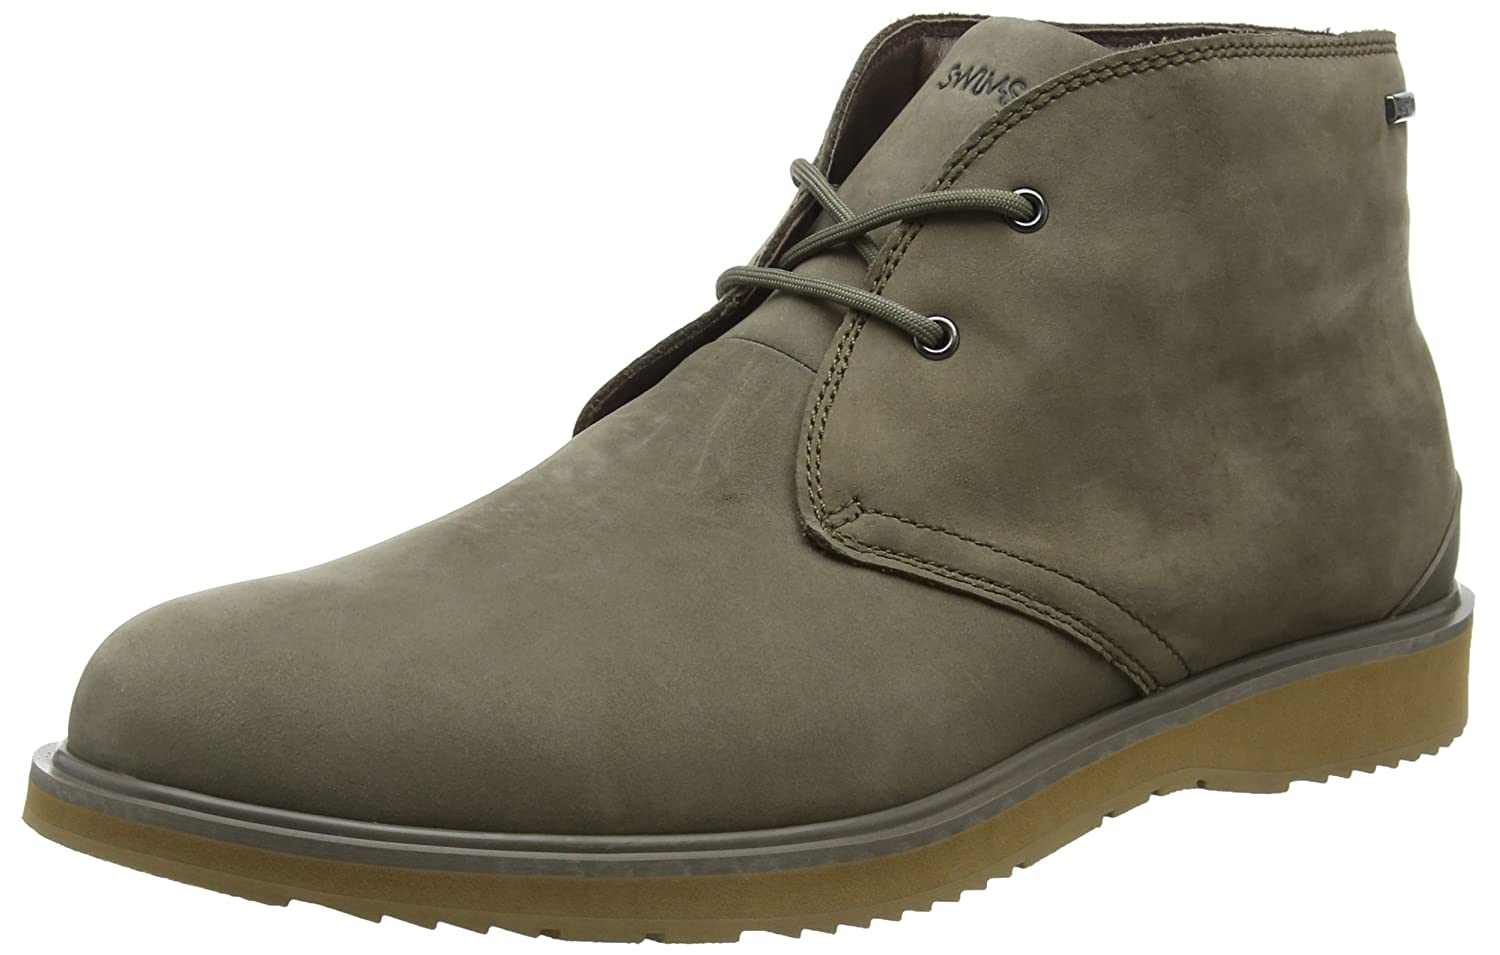 New Swims Barry Chukka Taupe/Biscuit 8 Mens Boots